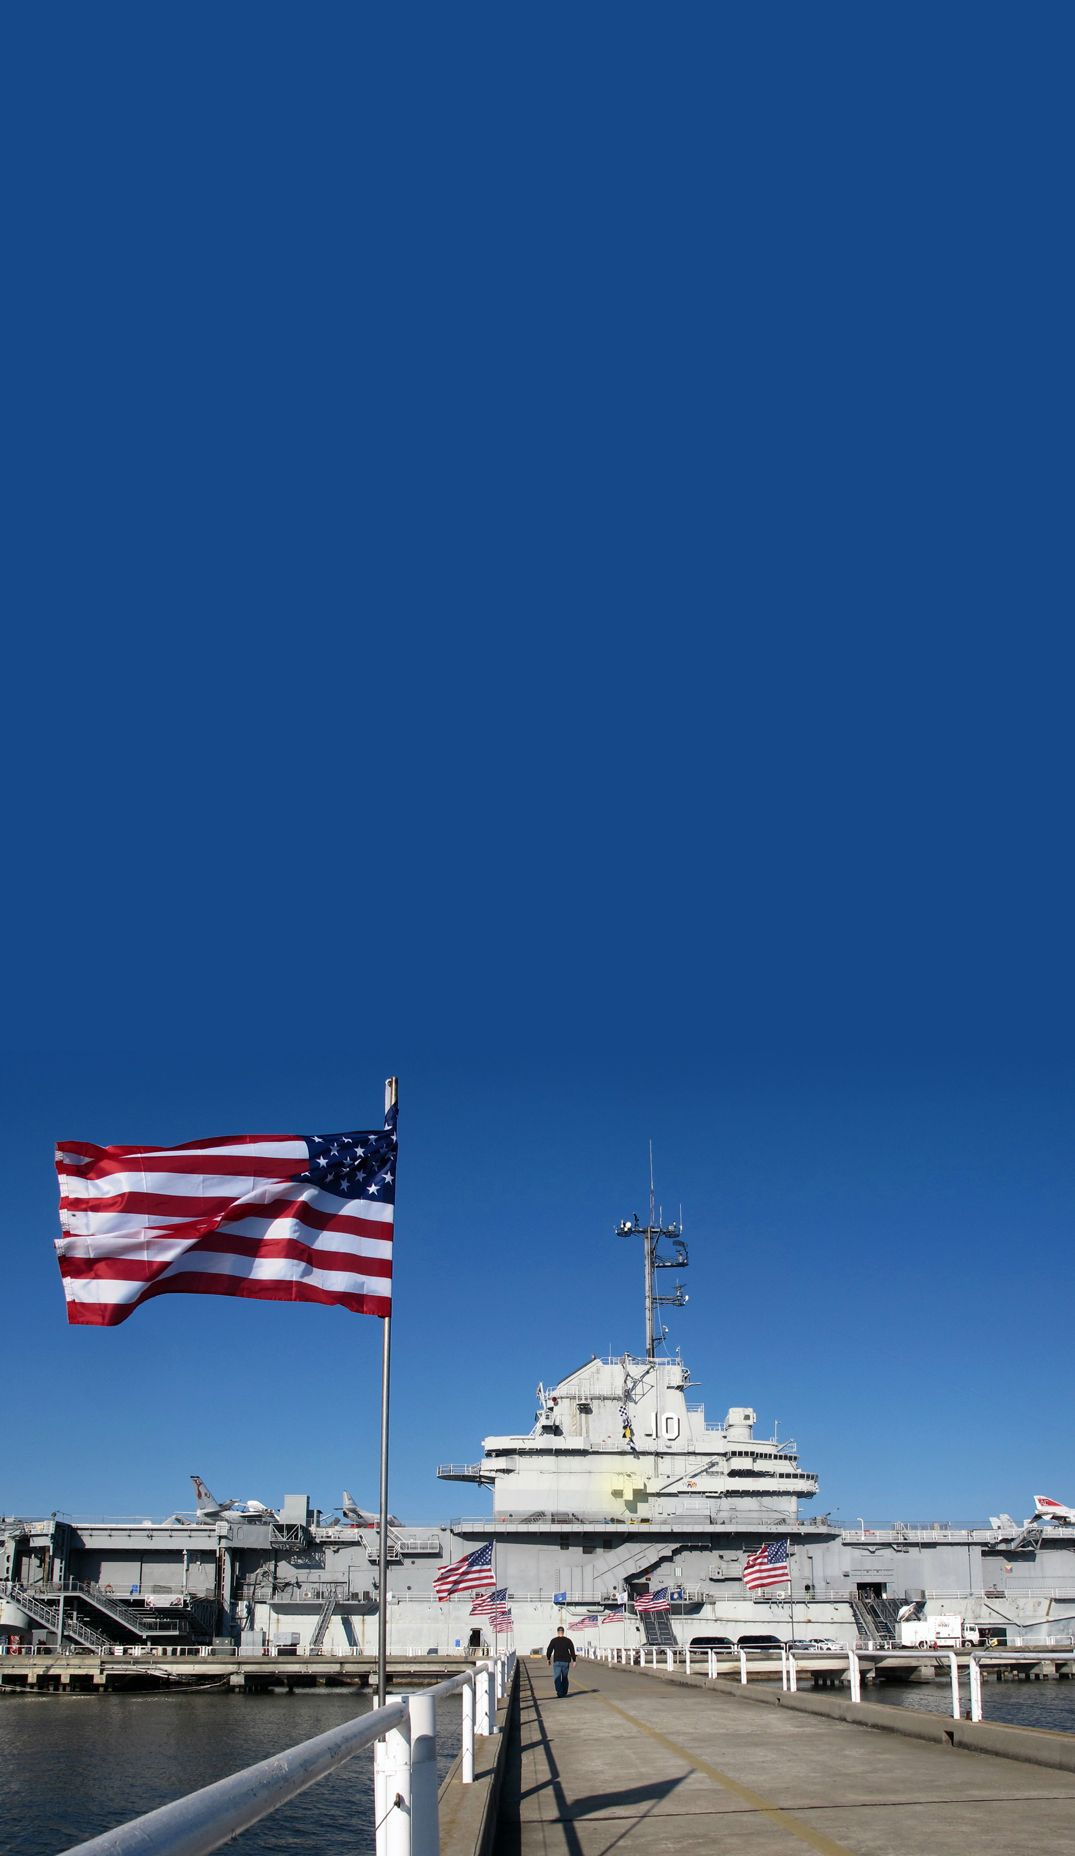 Seminar on Yorktown's role at Battle of Midway is Thursday at Patriots Point